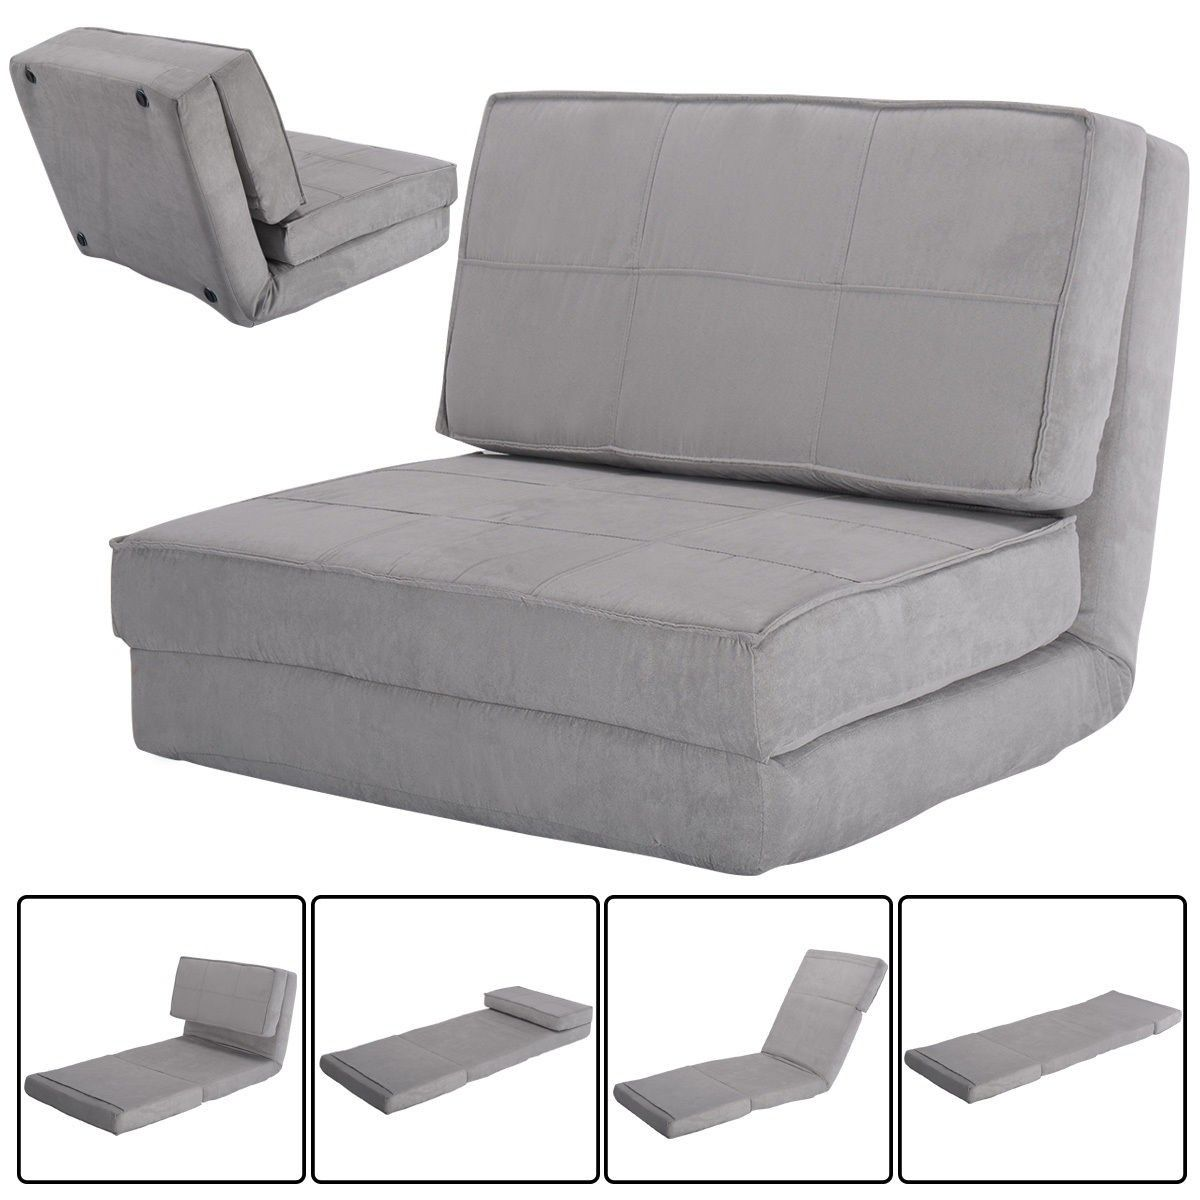 Convertible Lounger Folding Sofa Sleeper Bed Folding Sofa Bed Folding Sofa Beds For Small Spaces